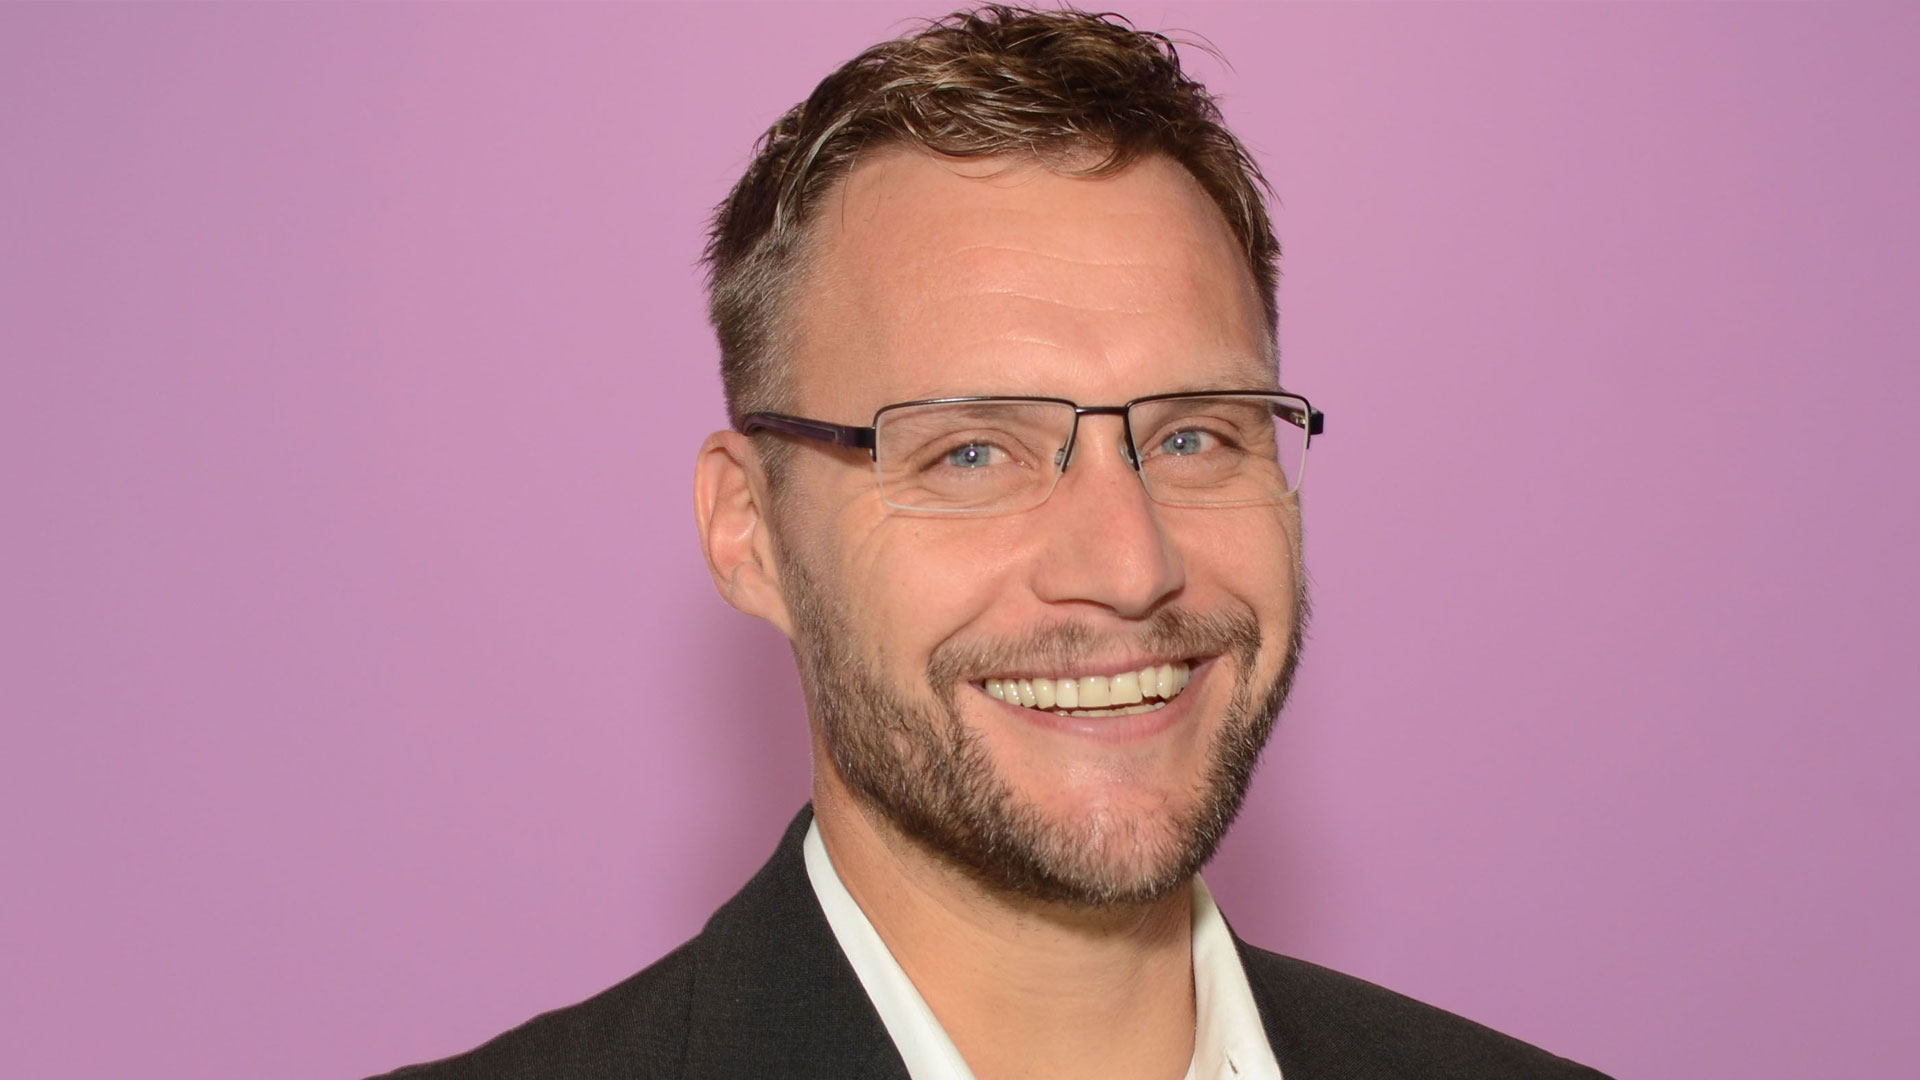 Dr Gerhard Schnyder to present at the Emerging Markets Conference